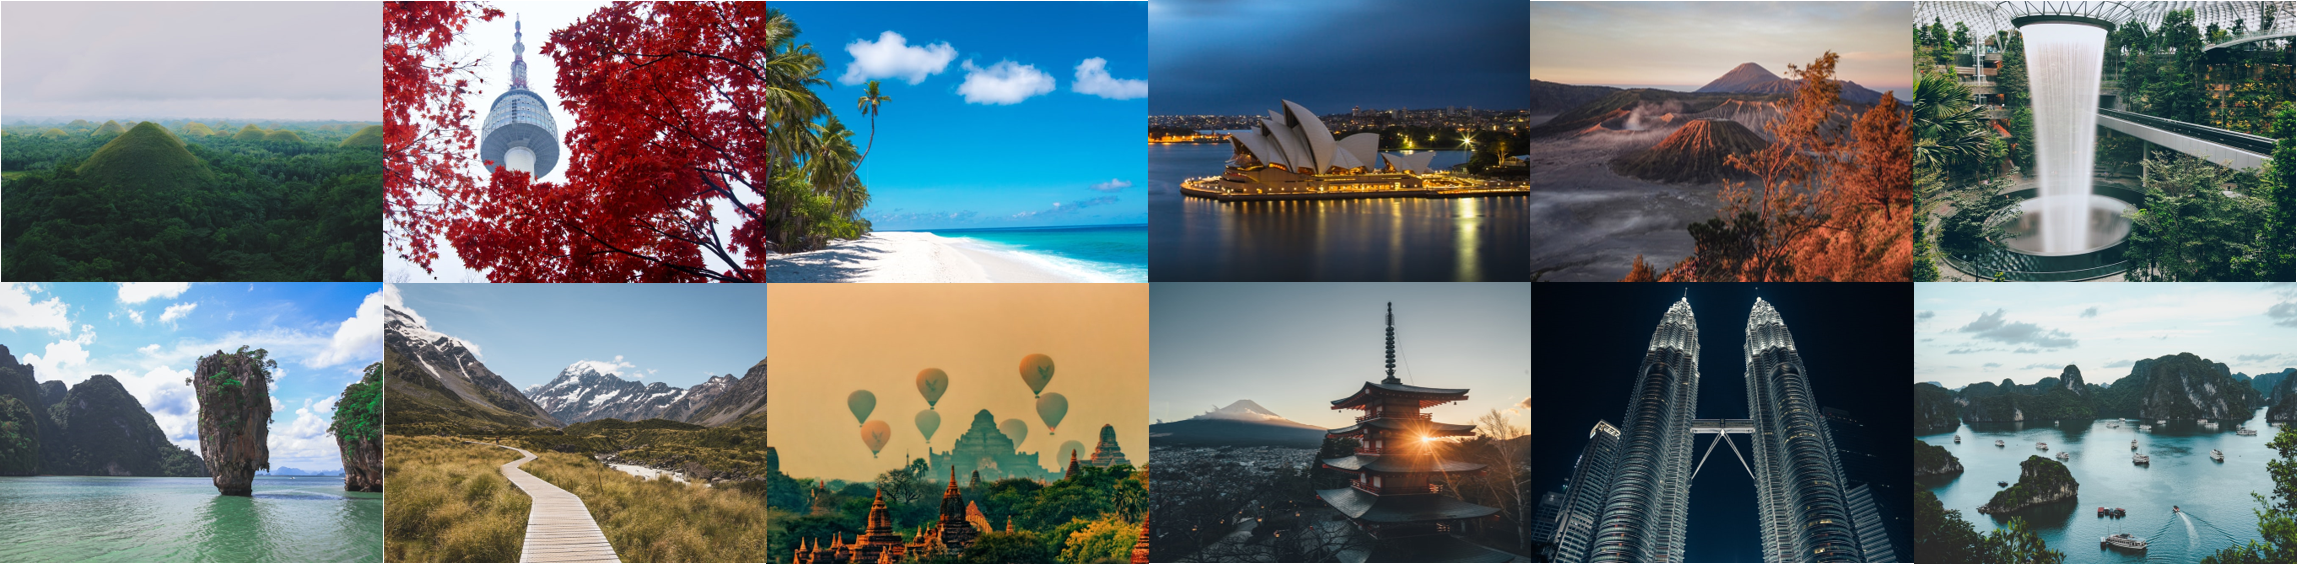 Hvs Hvs Covid 19 Impact On Hotels In Asia Pacific